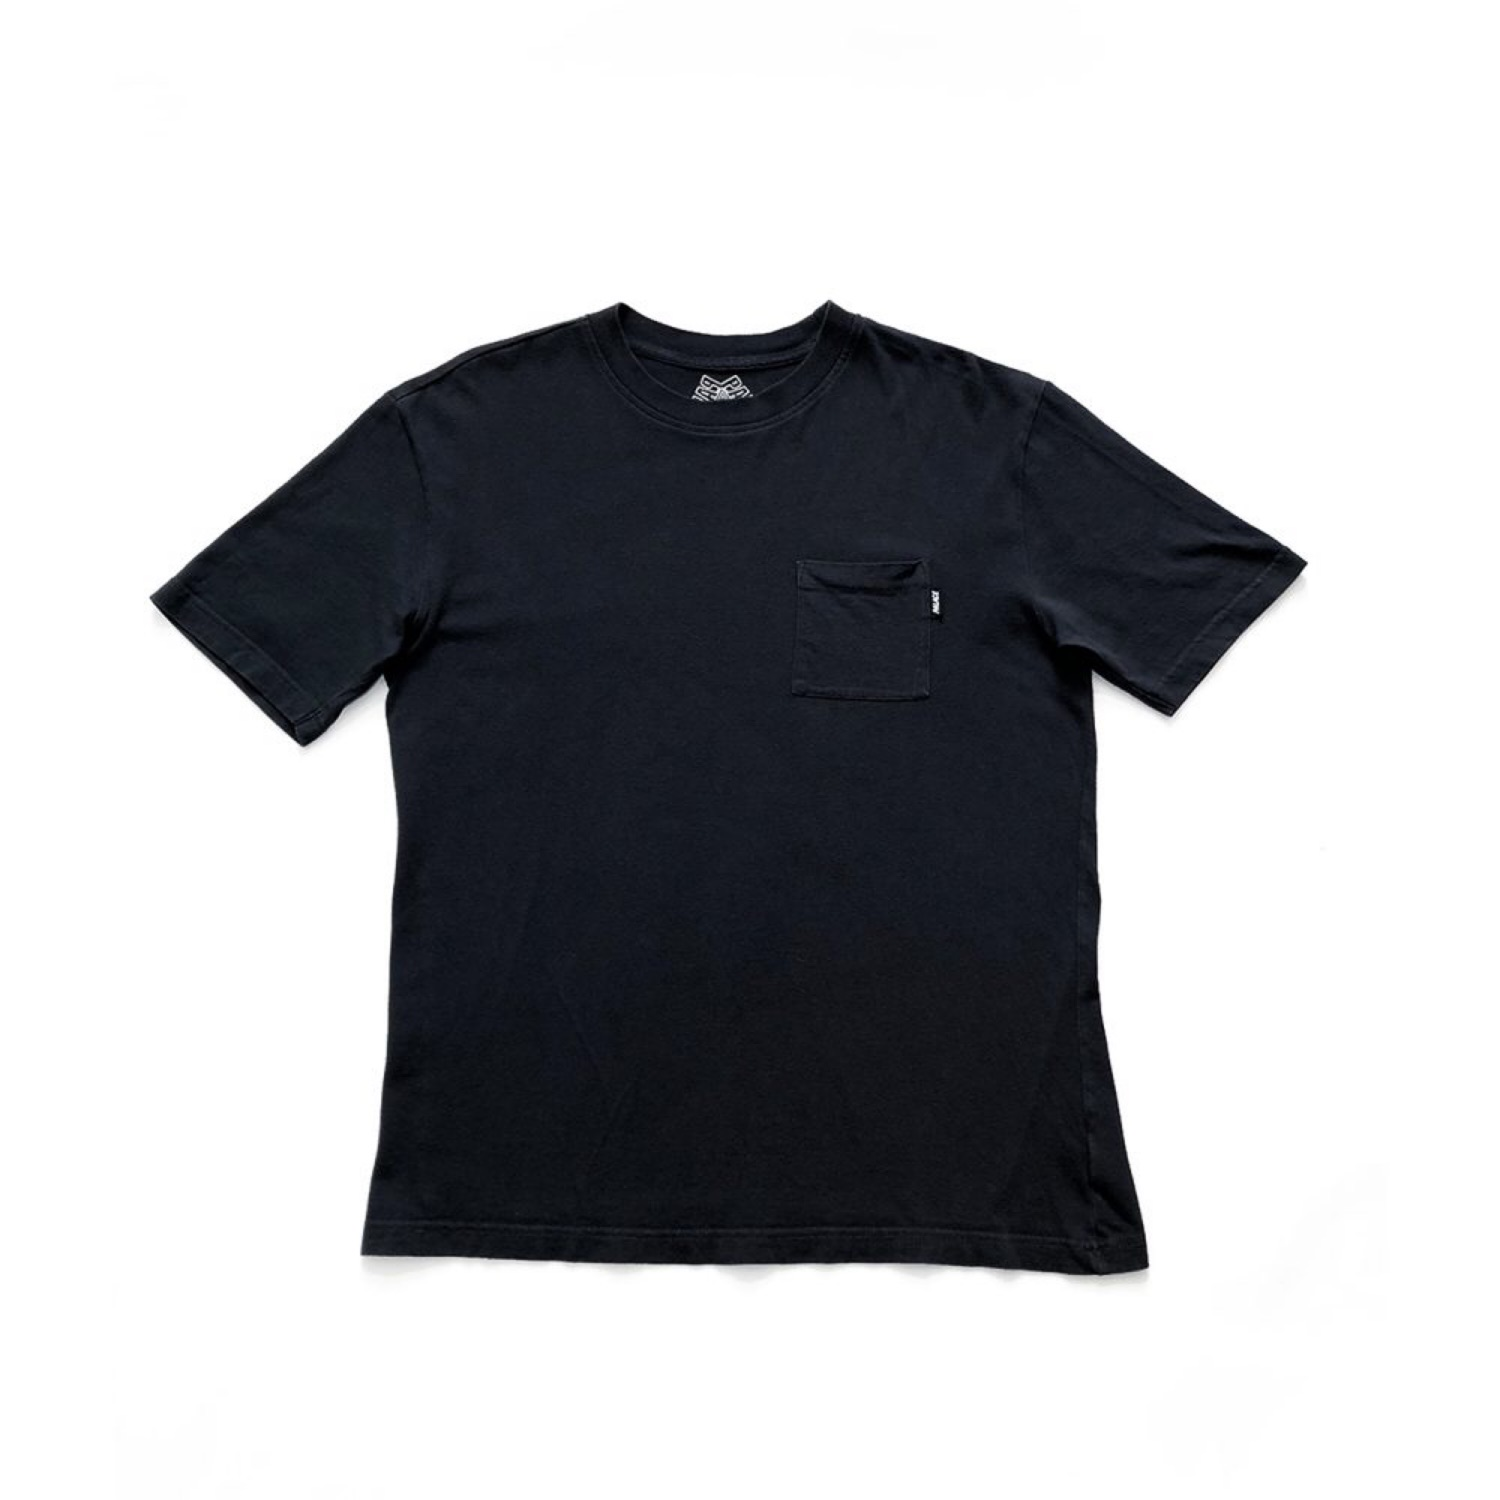 Palace Pocket Tee Blue Size Medium